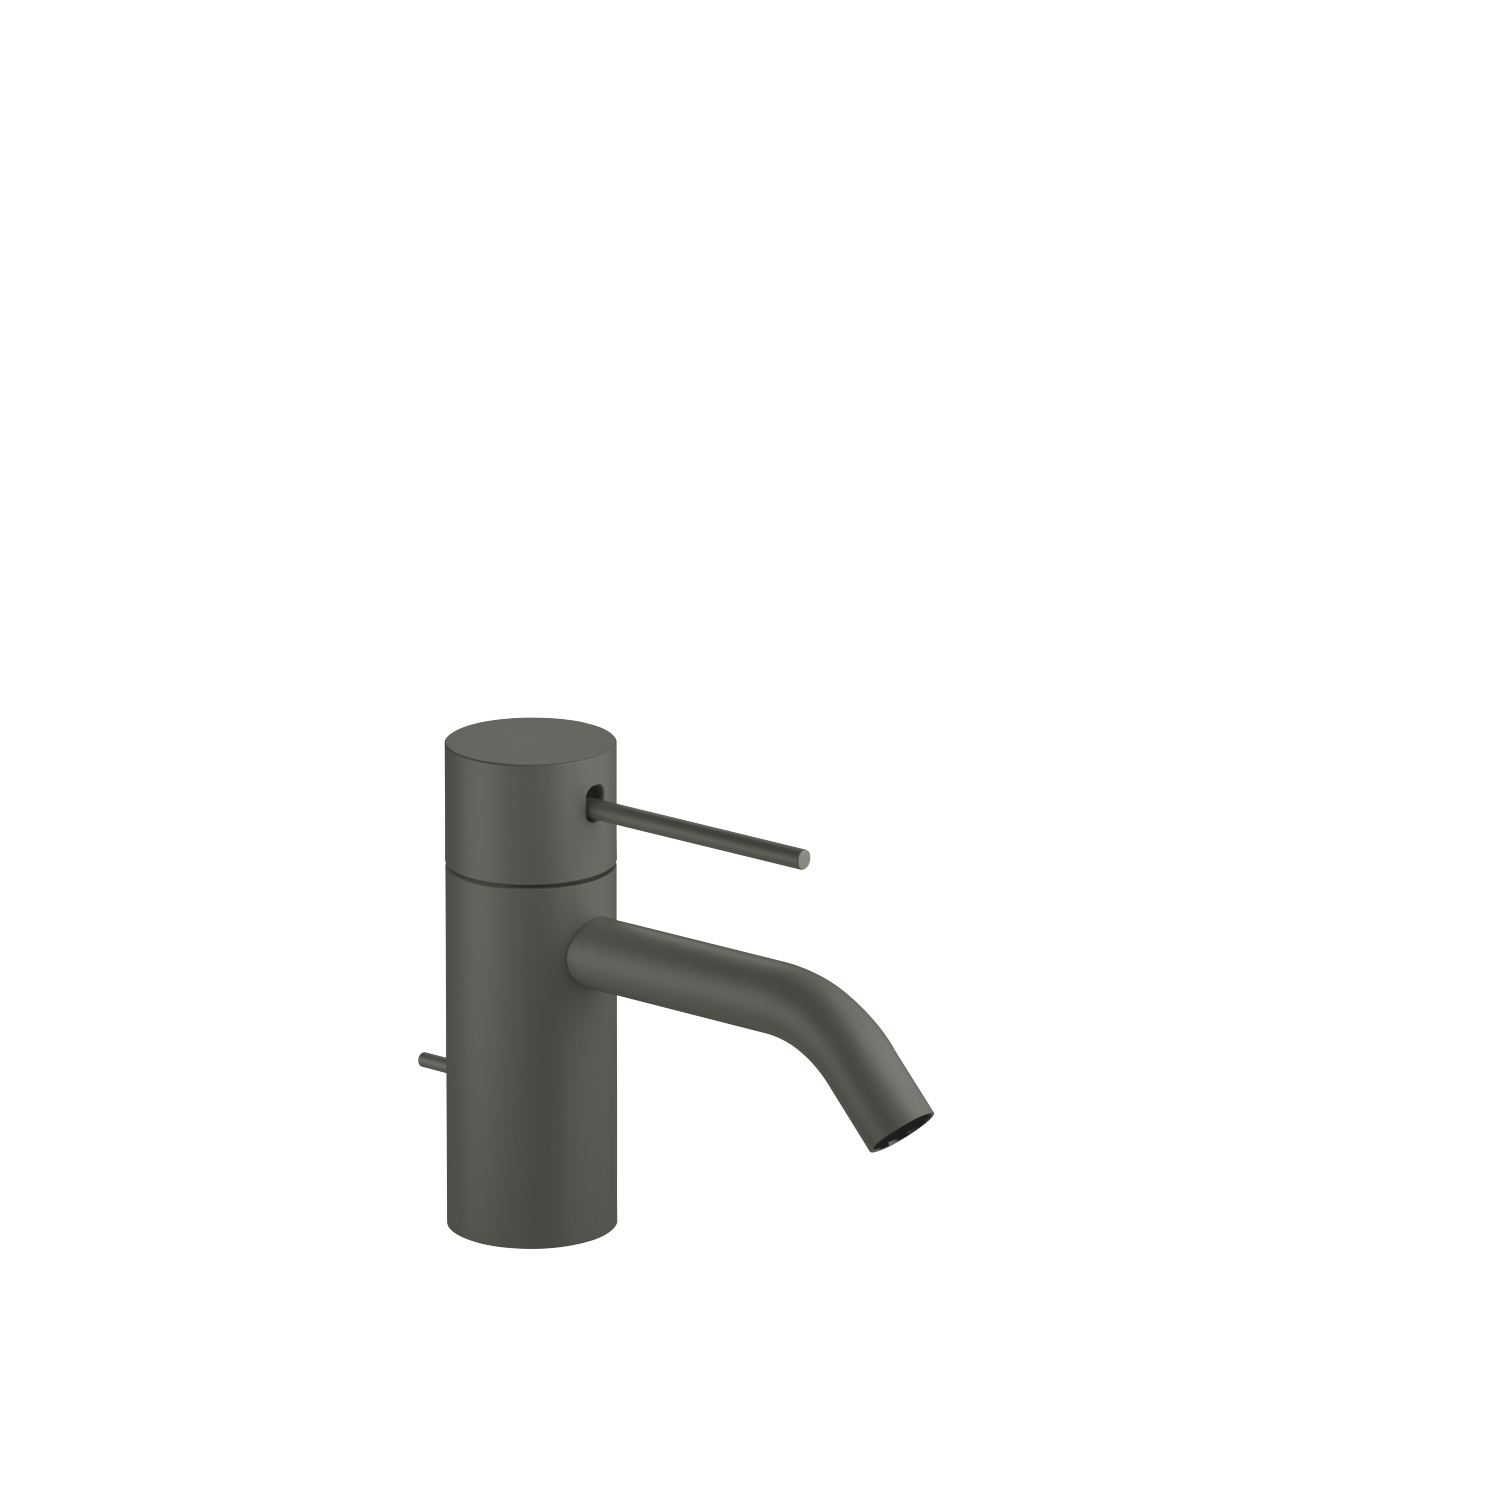 META SLIM Single-lever basin mixer with pop-up waste - dark grey